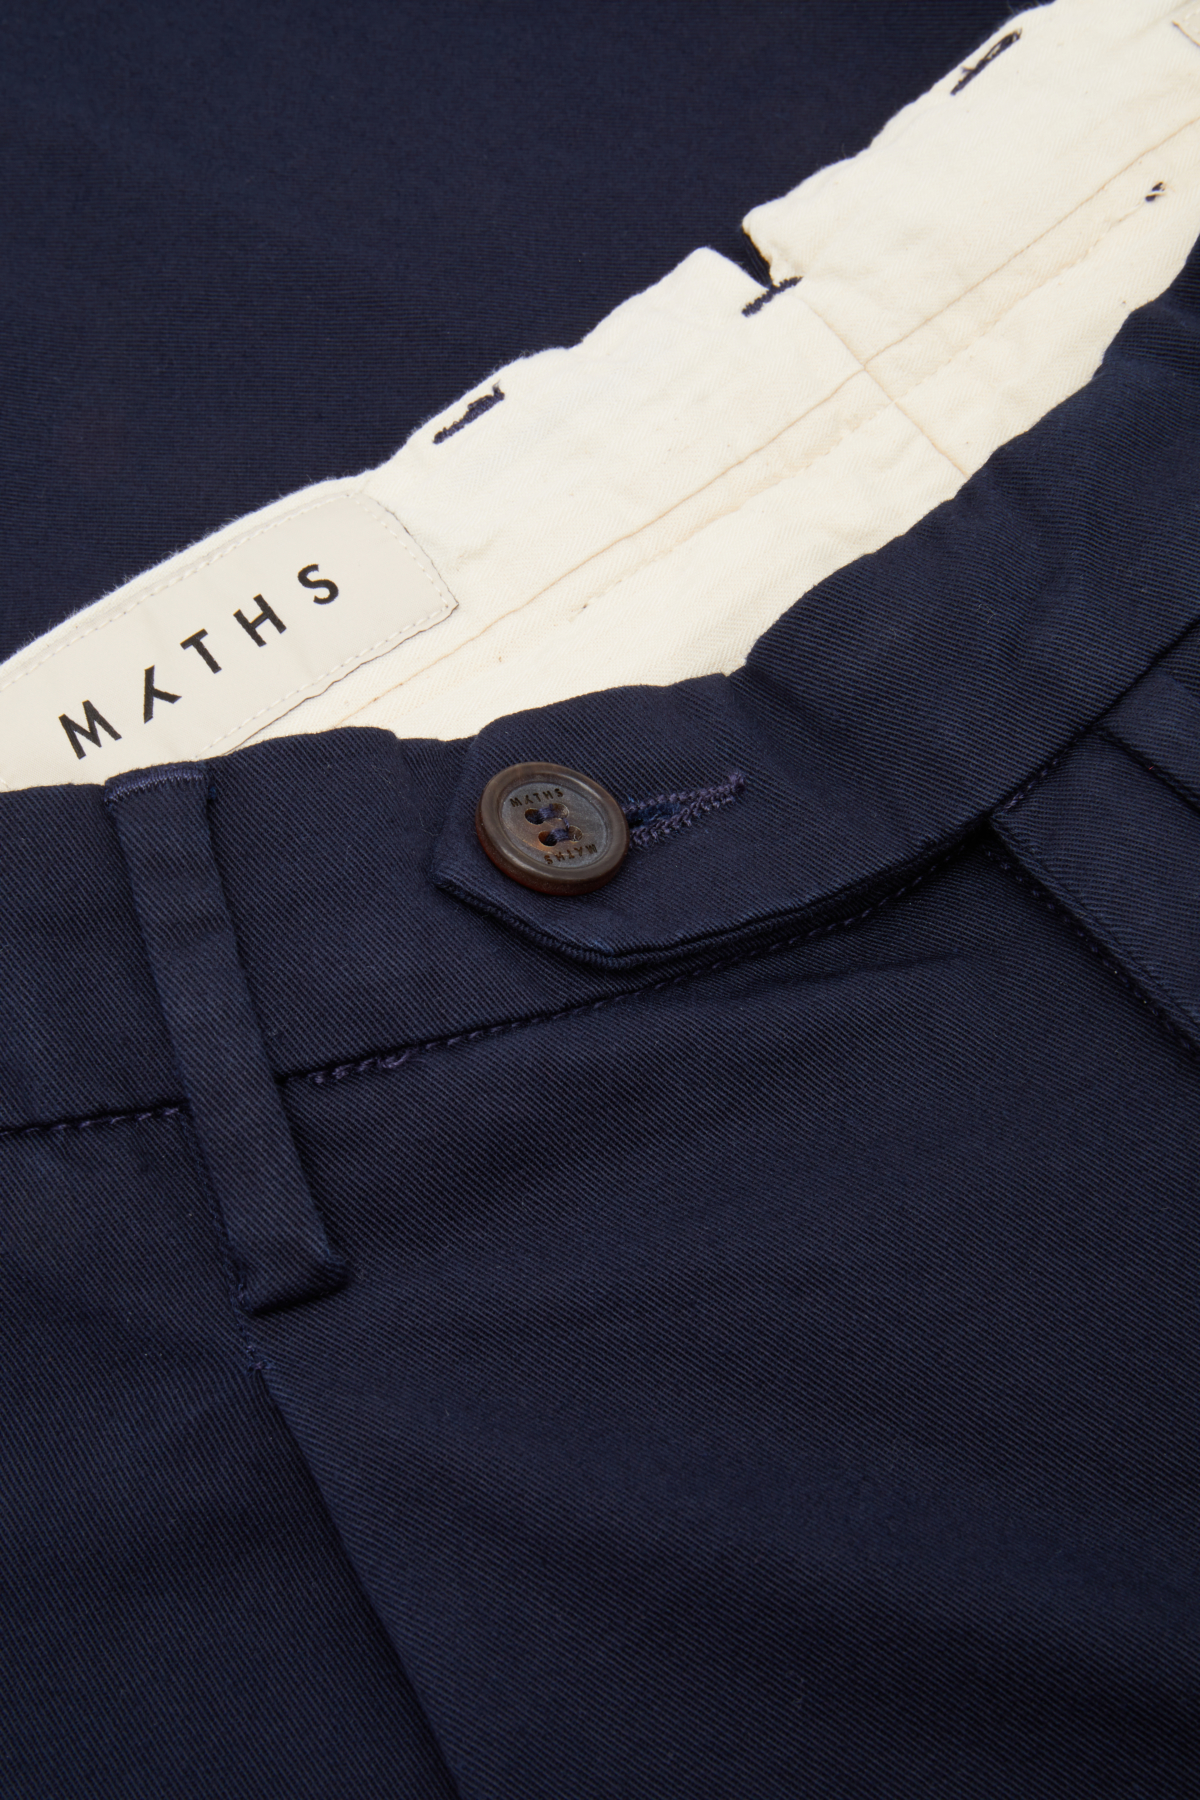 Myths Hose in Navy 440073